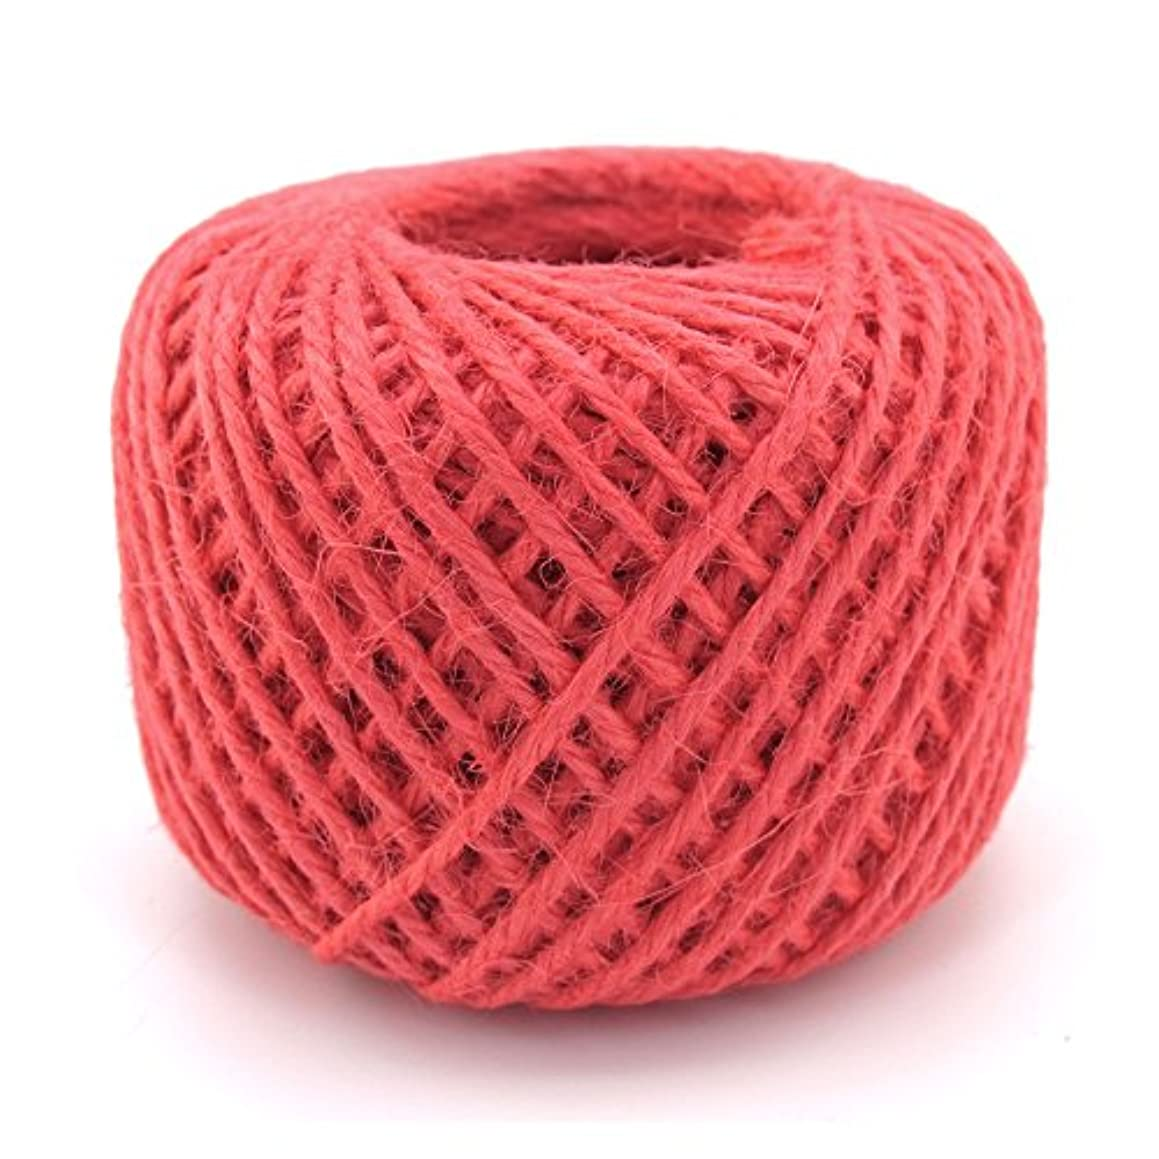 BambooMN 75 Yard, 2mm Crafty Jute Twine Thread Cord String Hemp Jute for Artworks, DIY Crafts, Gift Wrapping, Picture Display and Gardening, 3 Balls Pink